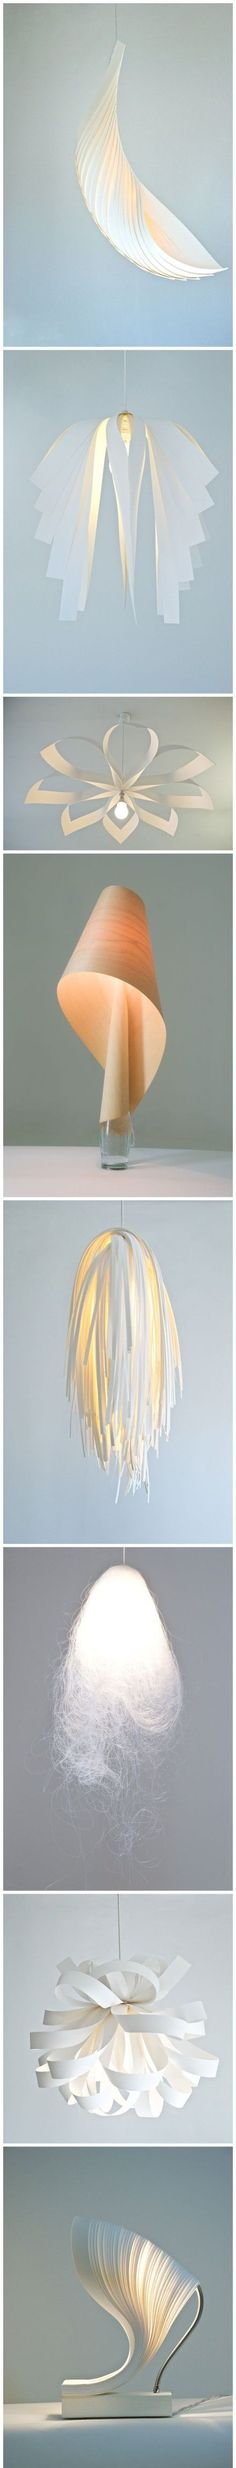 Amazed by the beauty of these limited edition paper lamp, designed by 7gods